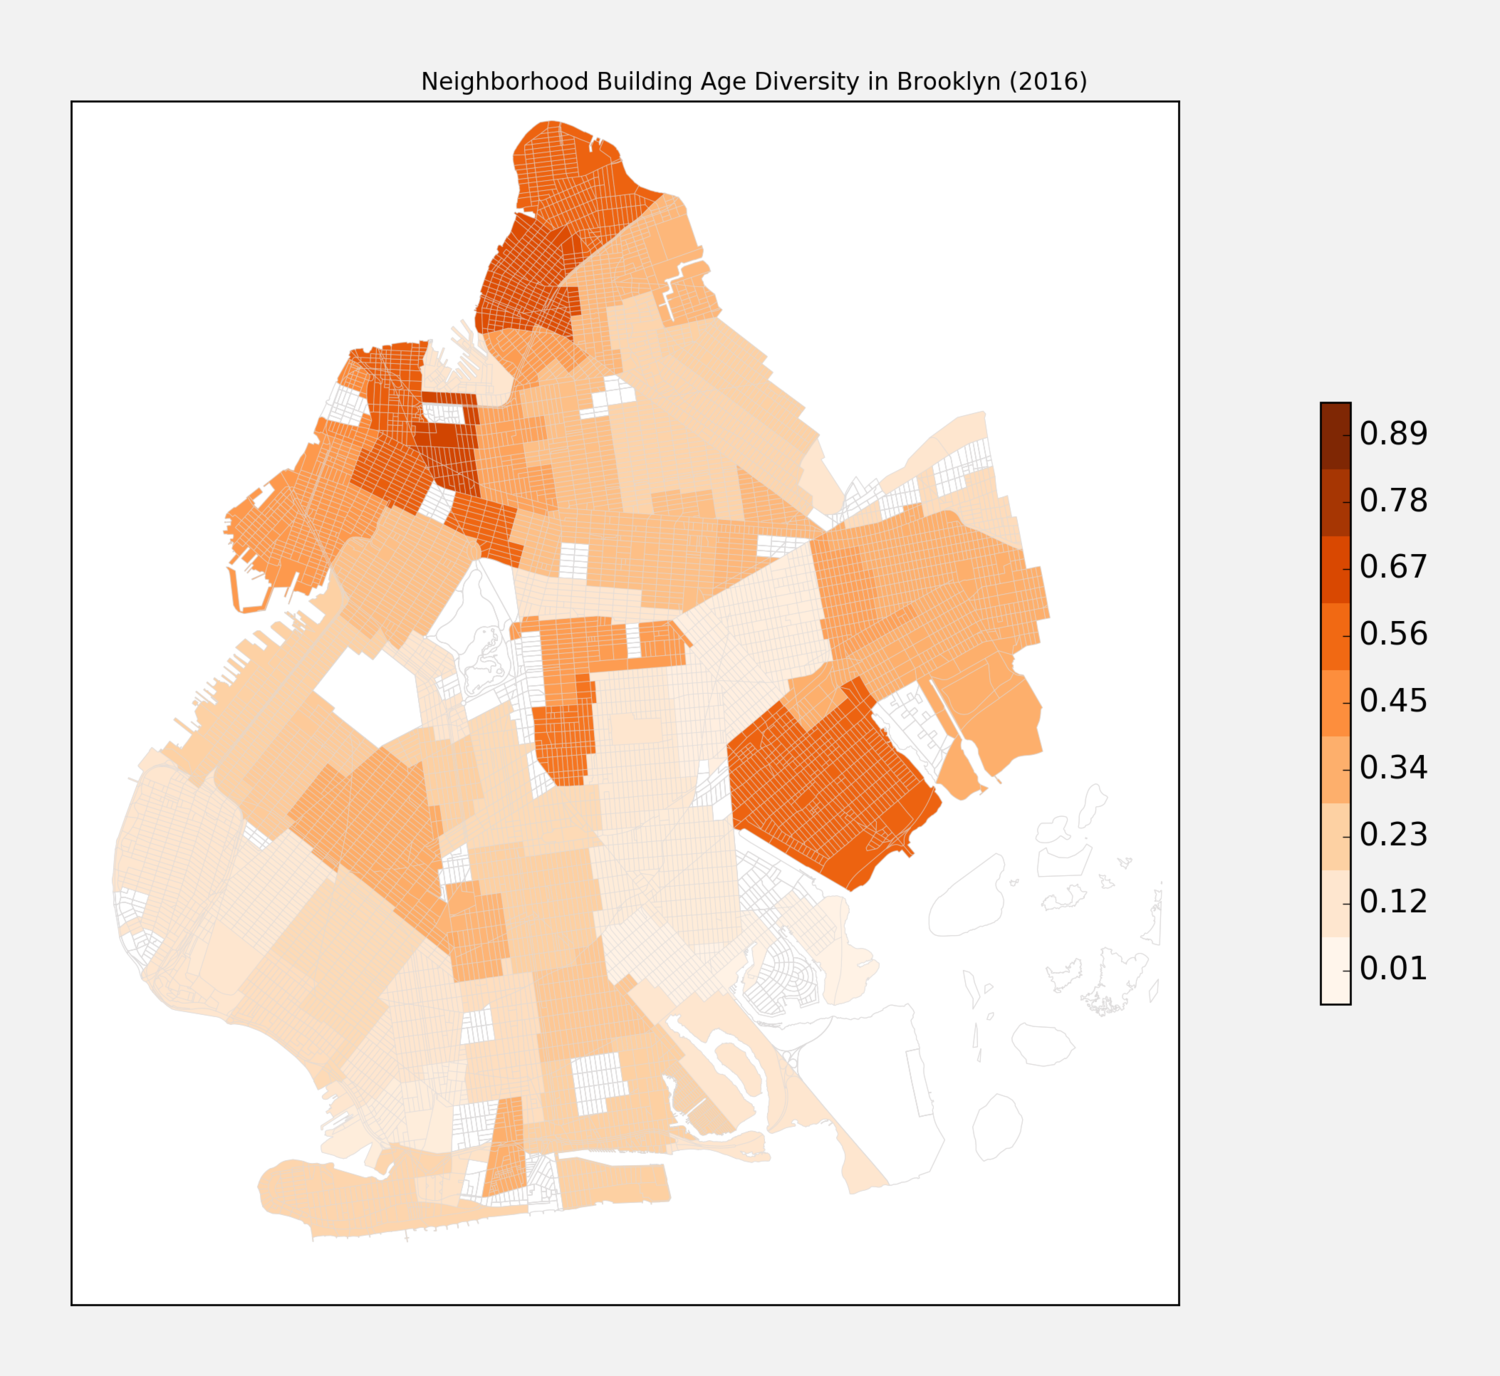 Neighborhood Building Age Diversity in Brooklyn (2016)